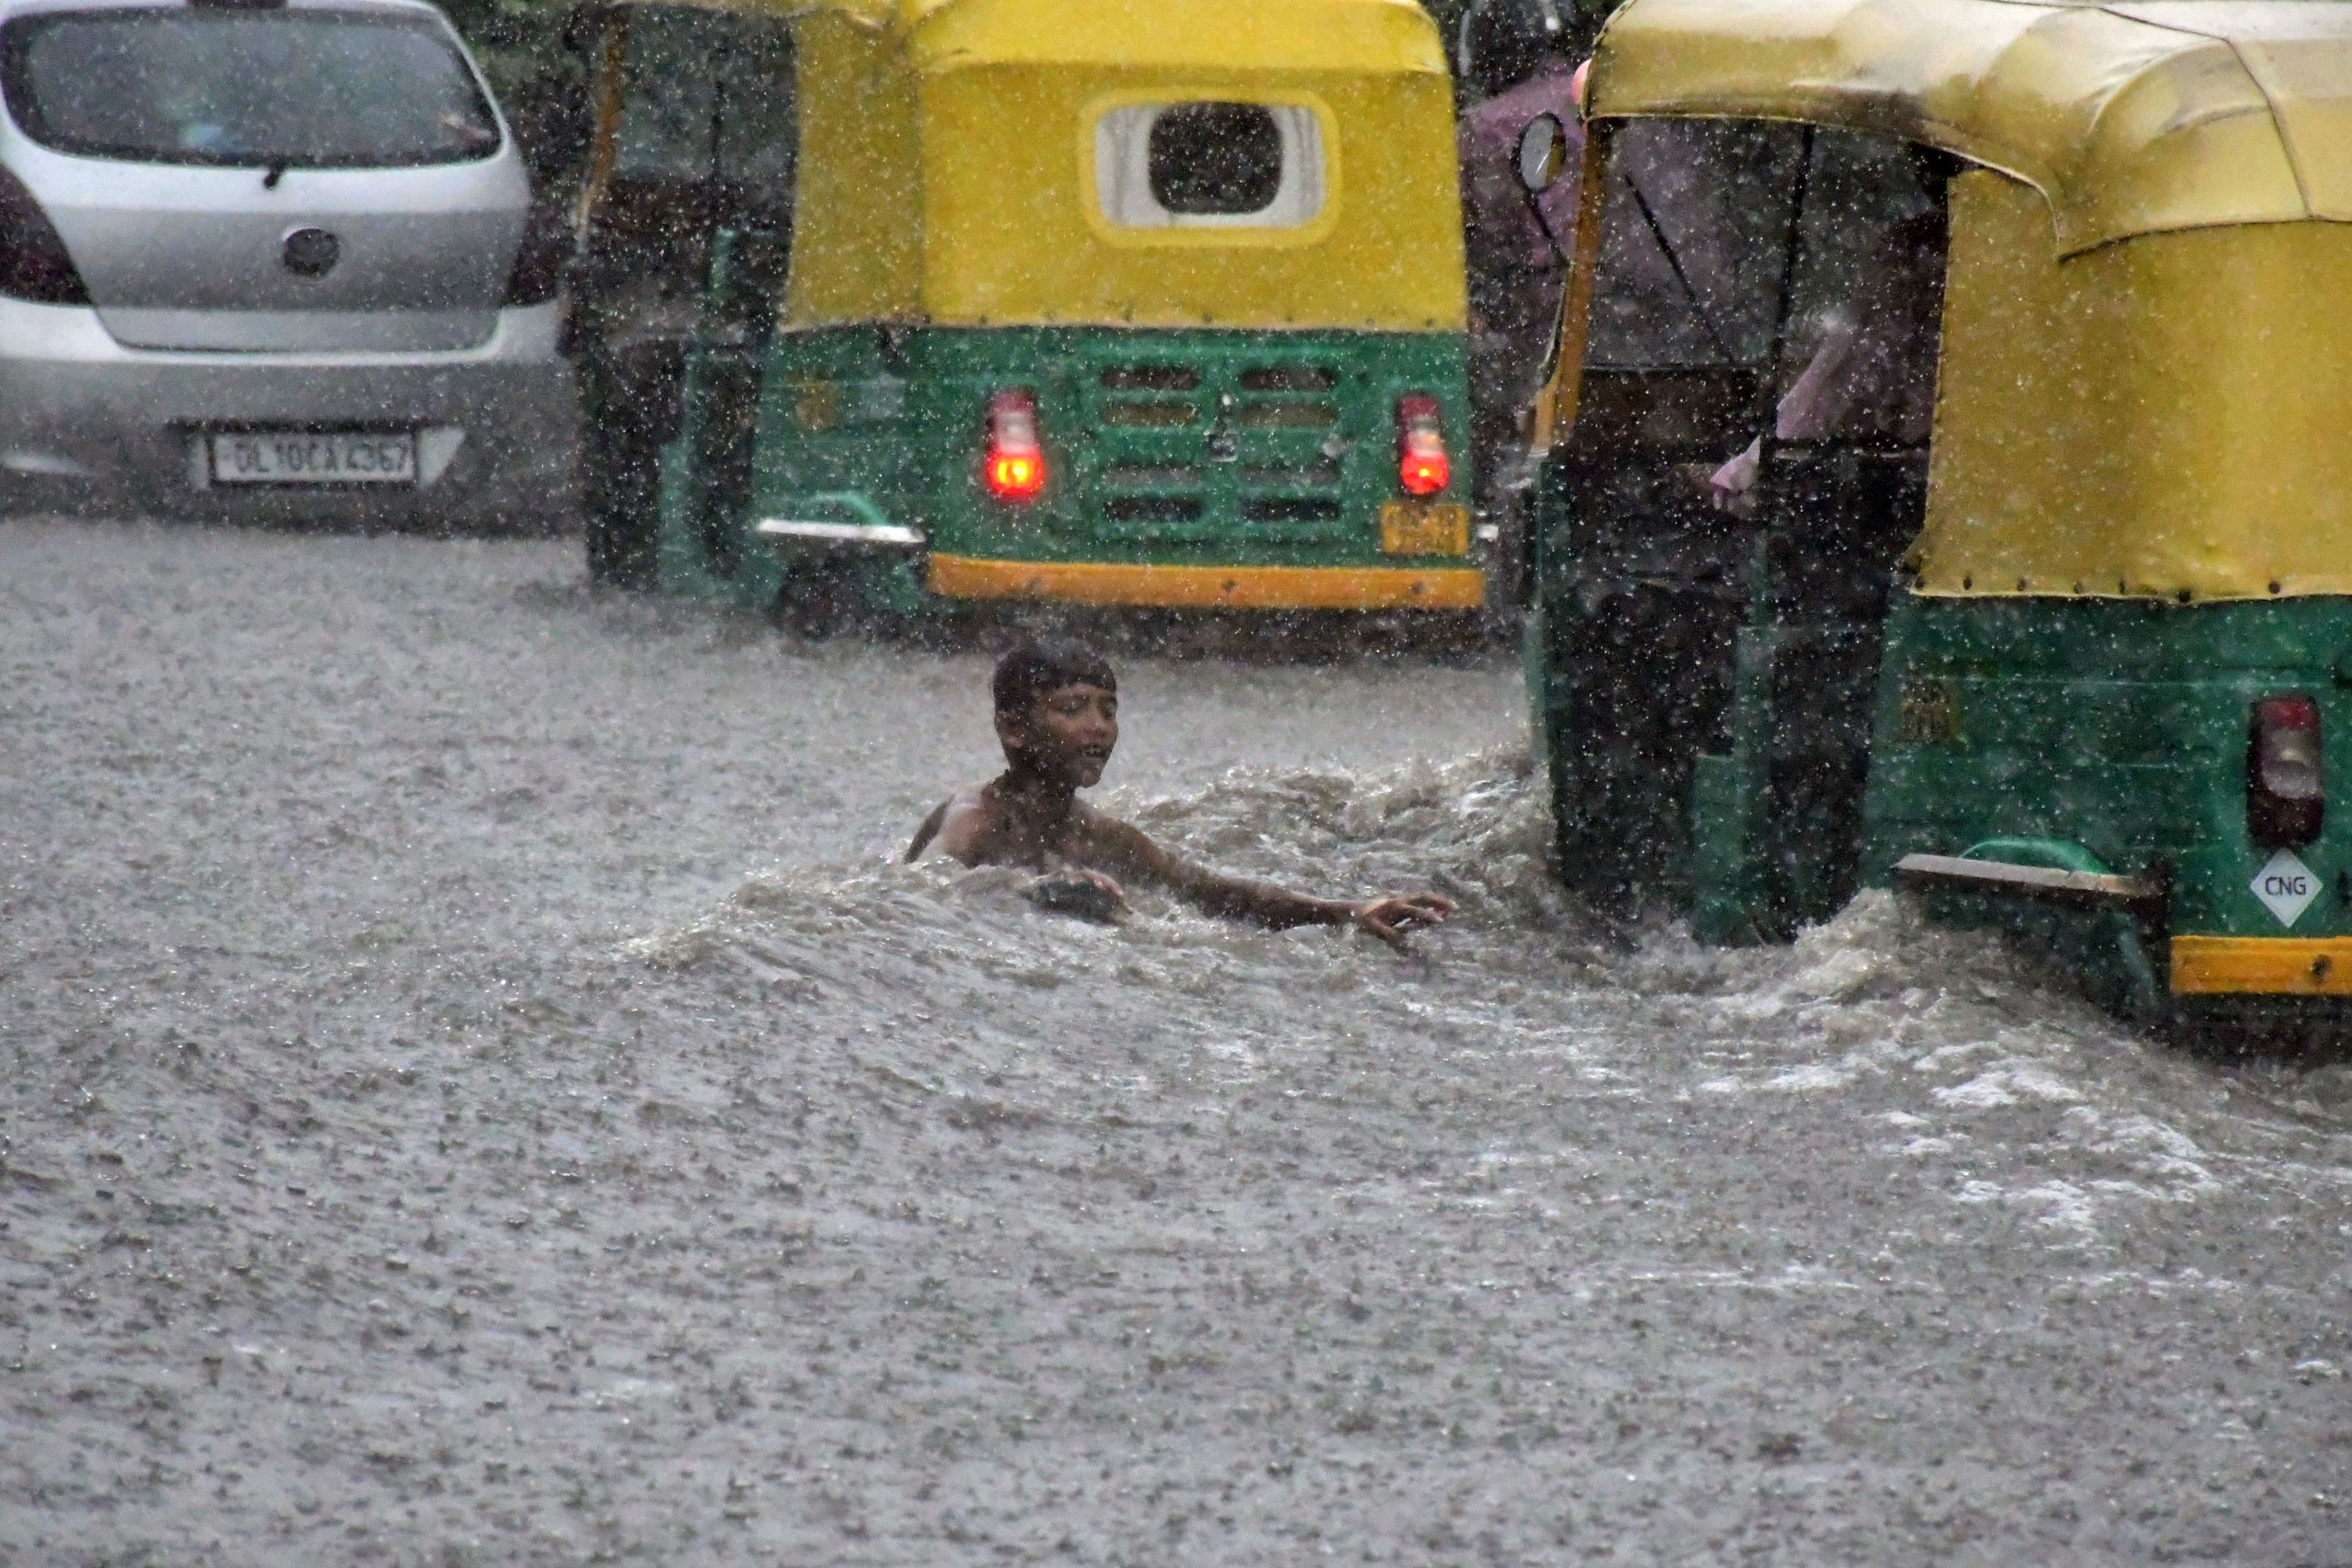 Some other key areas that witnessed heavy waterlogging include Ring Road near WHO building, NH-48 (Airport road), Moti Bagh, RK Puram, Madhu Vihar, Hari Nagar, Rohtak Road, Badarpur, Som Vihar, Ring Road near IP Station, among others.